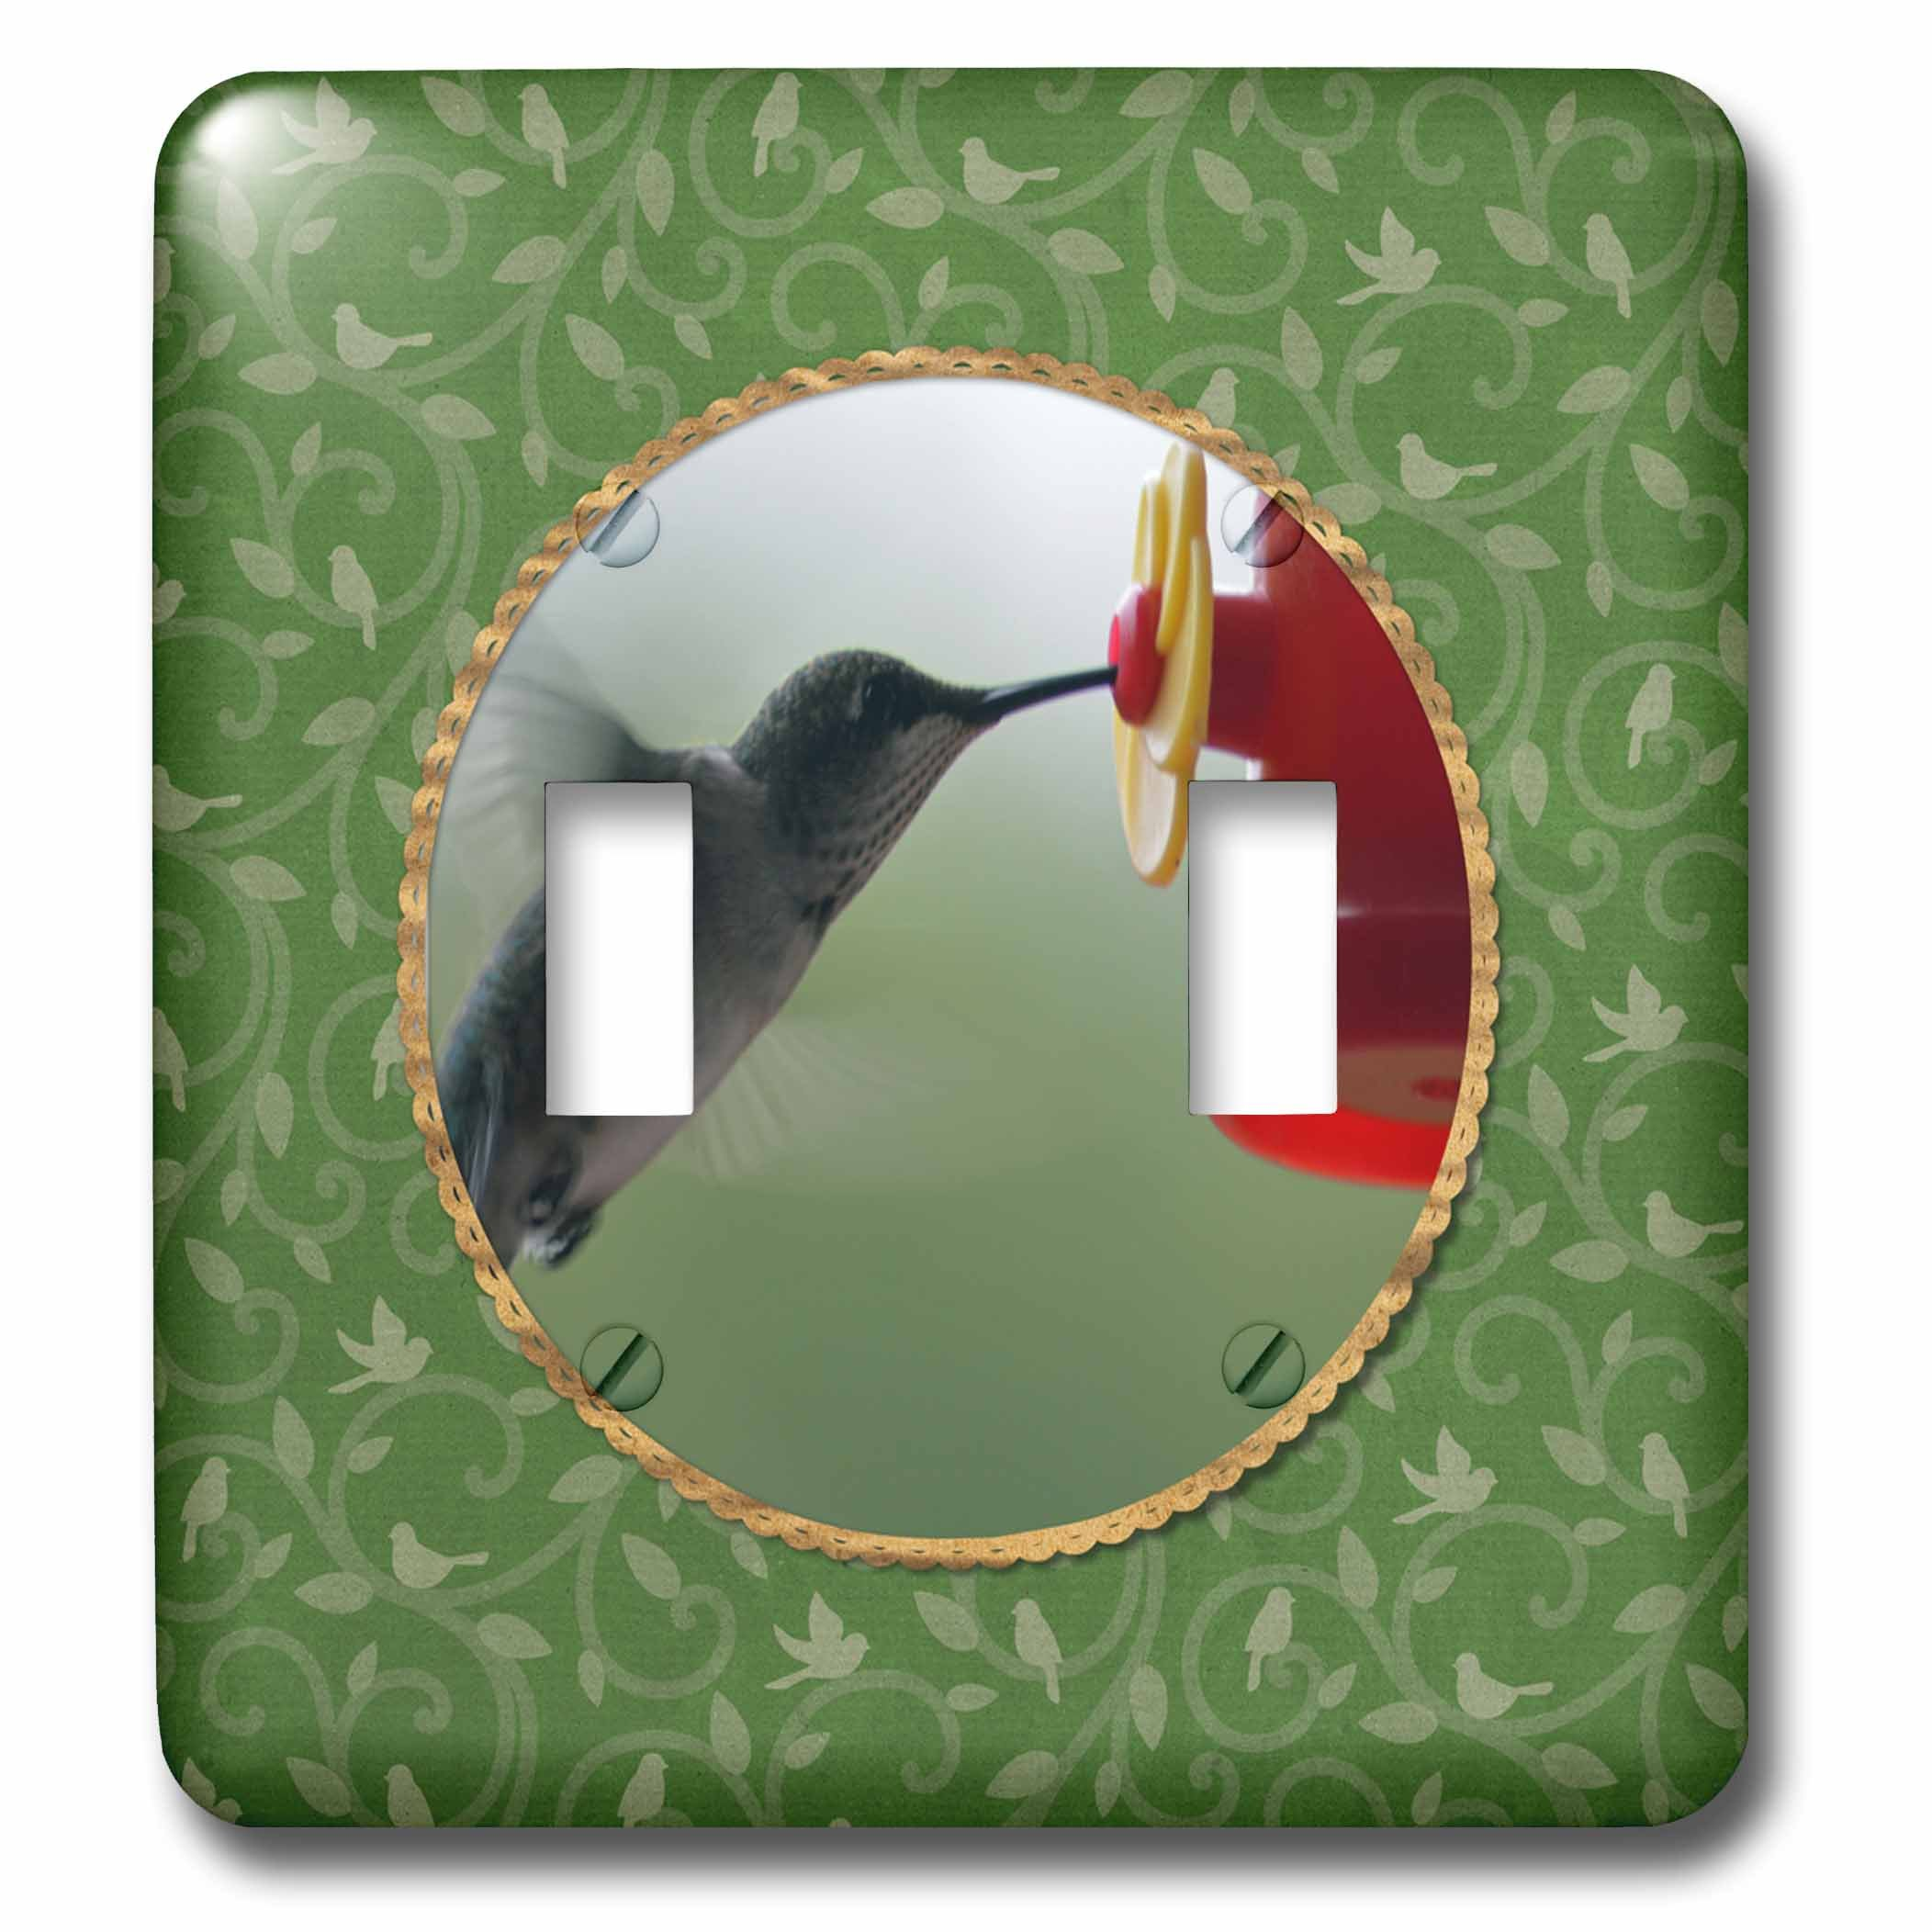 3dRose Beverly Turner Bird Photography - Hummingbird at Feeder in Round, Birds on Branches, Green - Light Switch Covers - double toggle switch (lsp_274408_2)